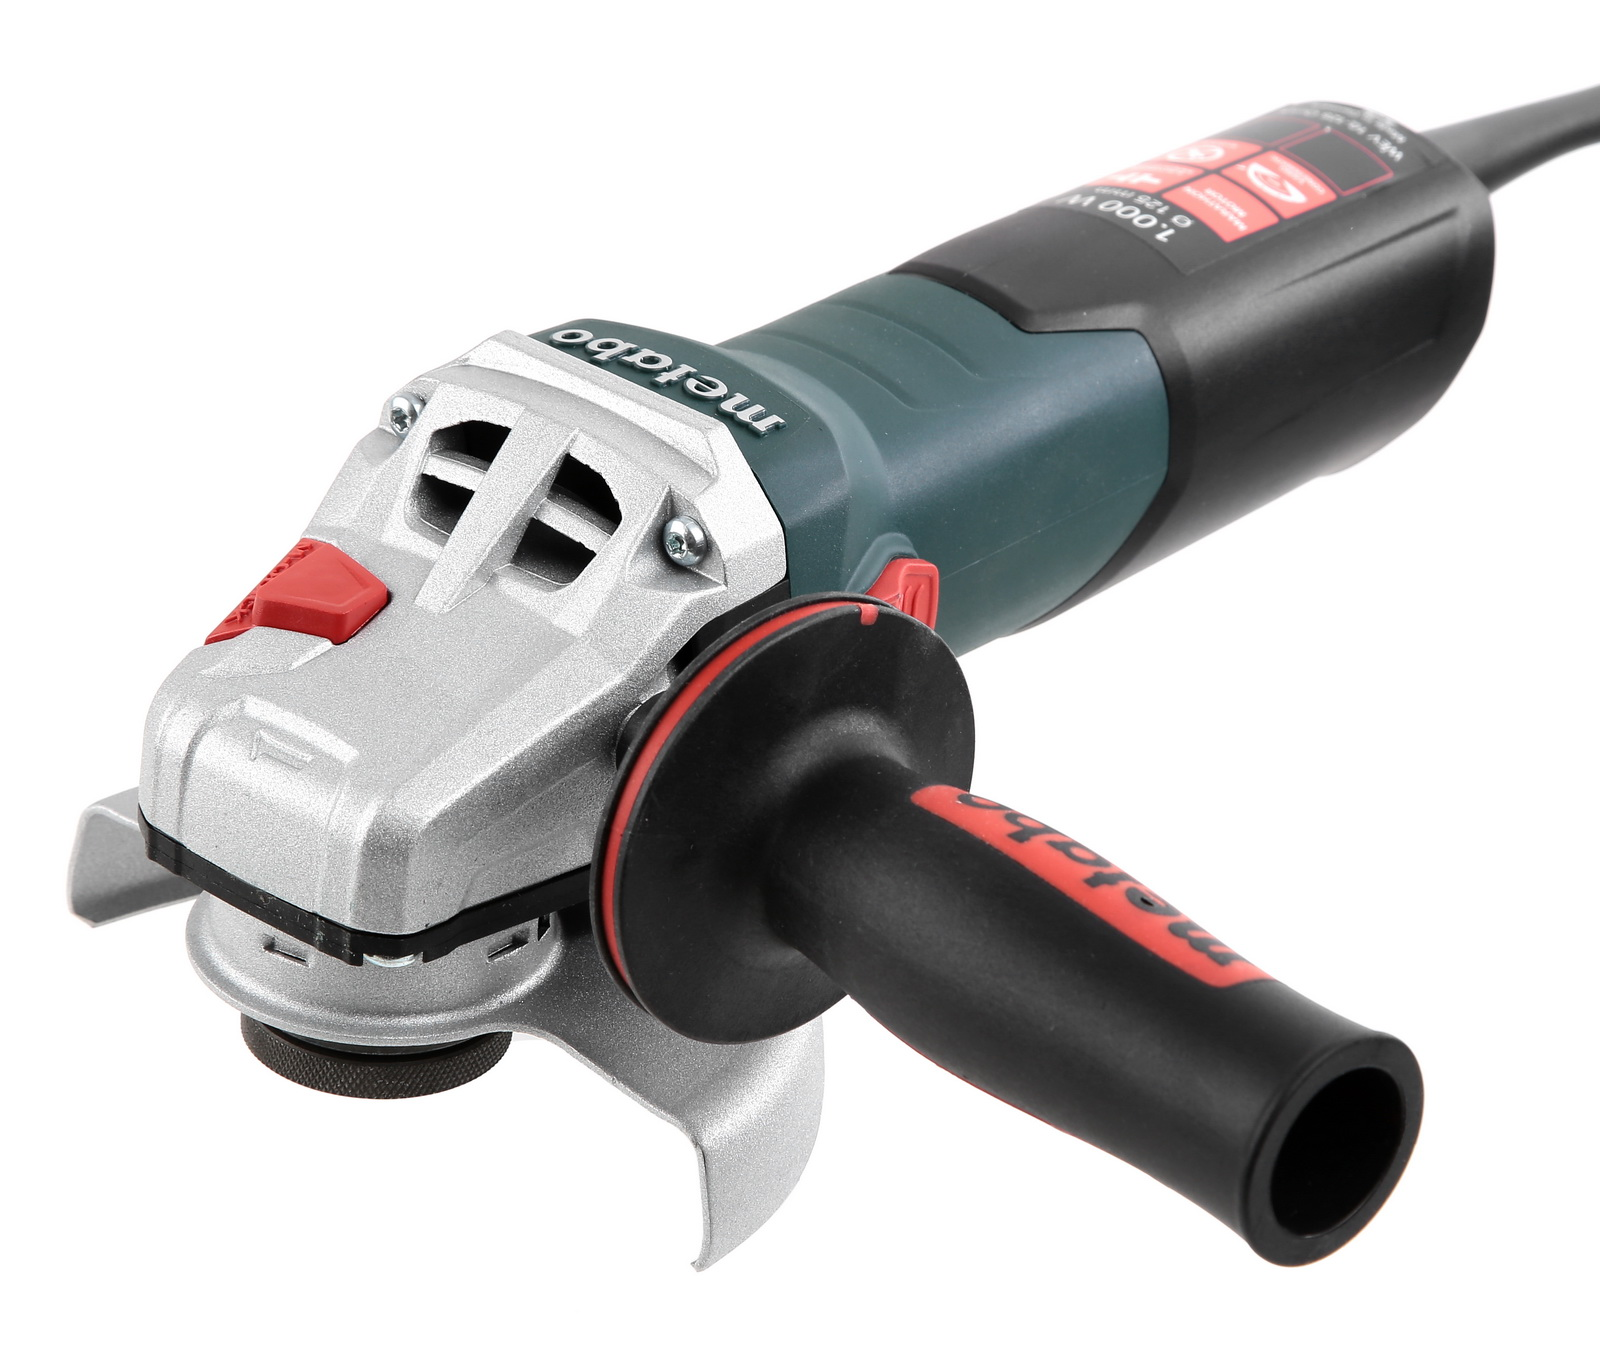 УШМ (болгарка) Metabo Wev 10-125 quick (600388000)